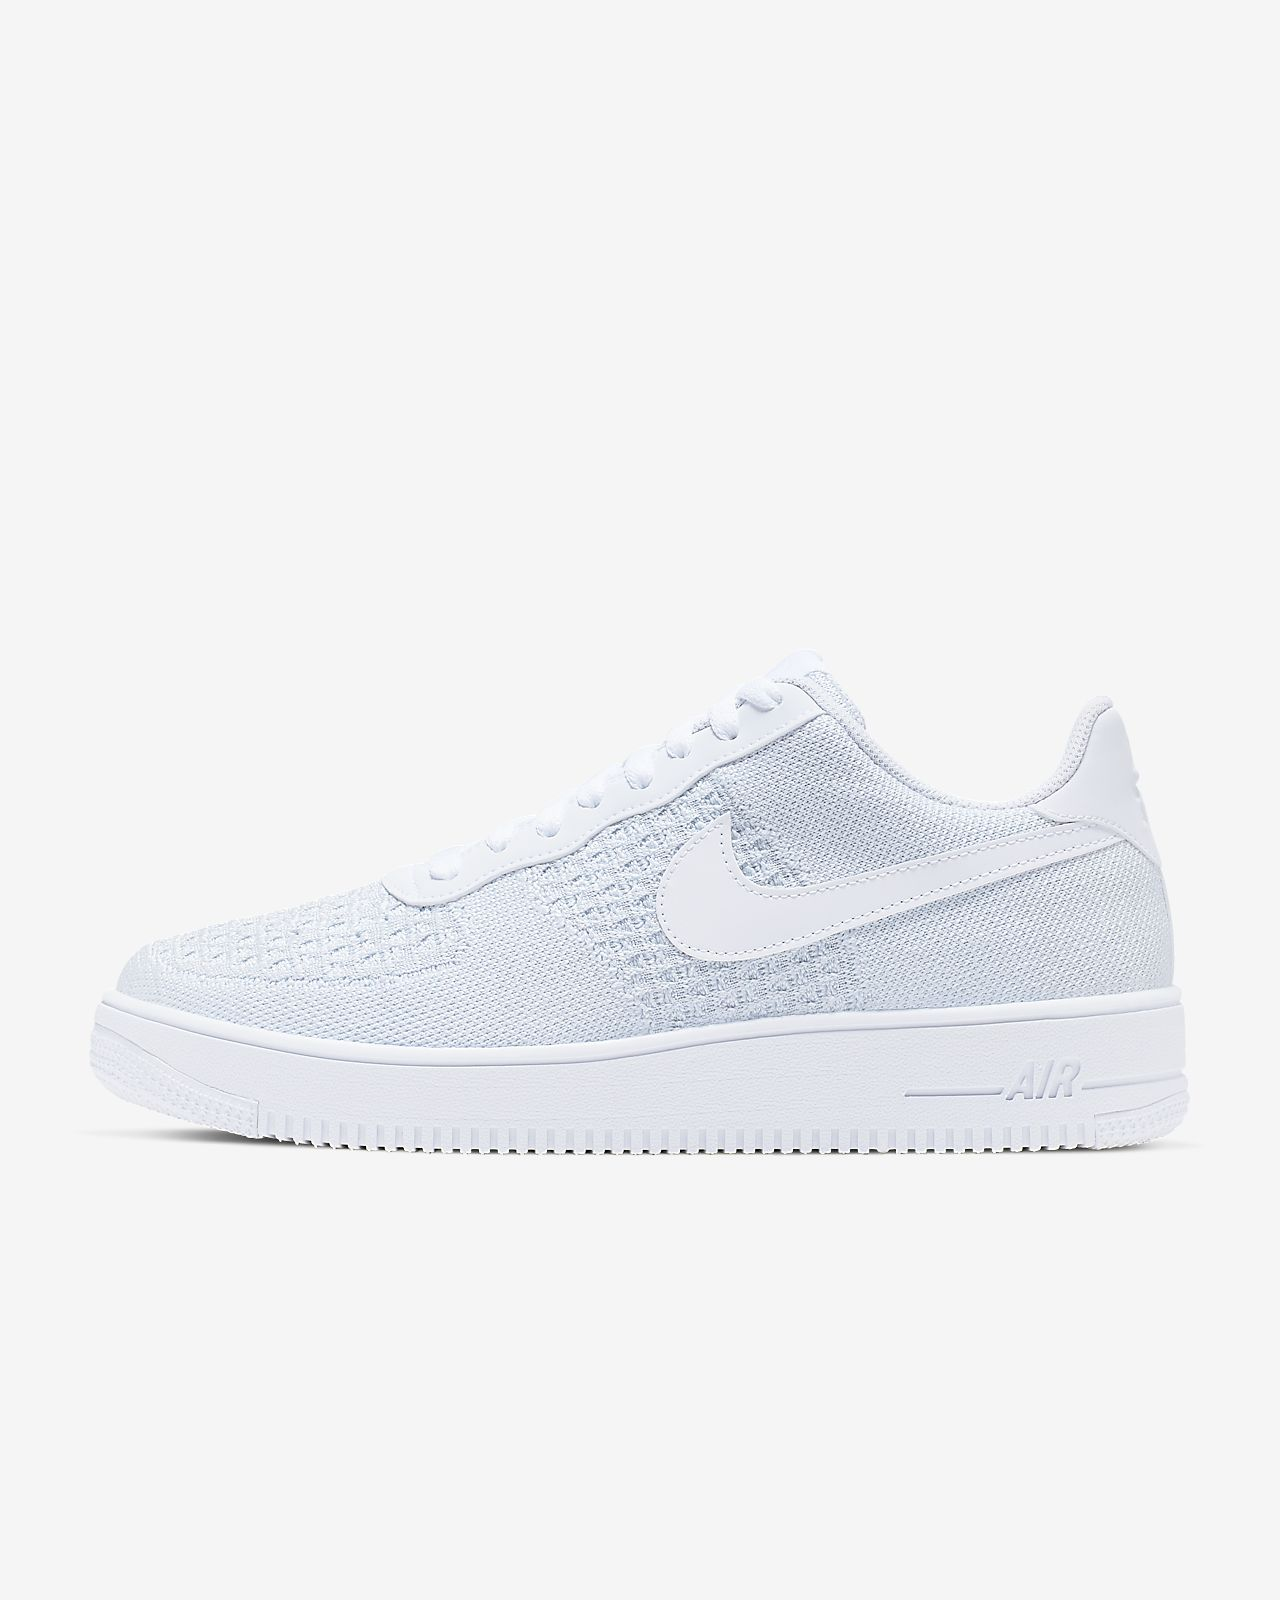 Nike Air Force 1 Flyknit 2.0 Low White Pure Platinum Grey